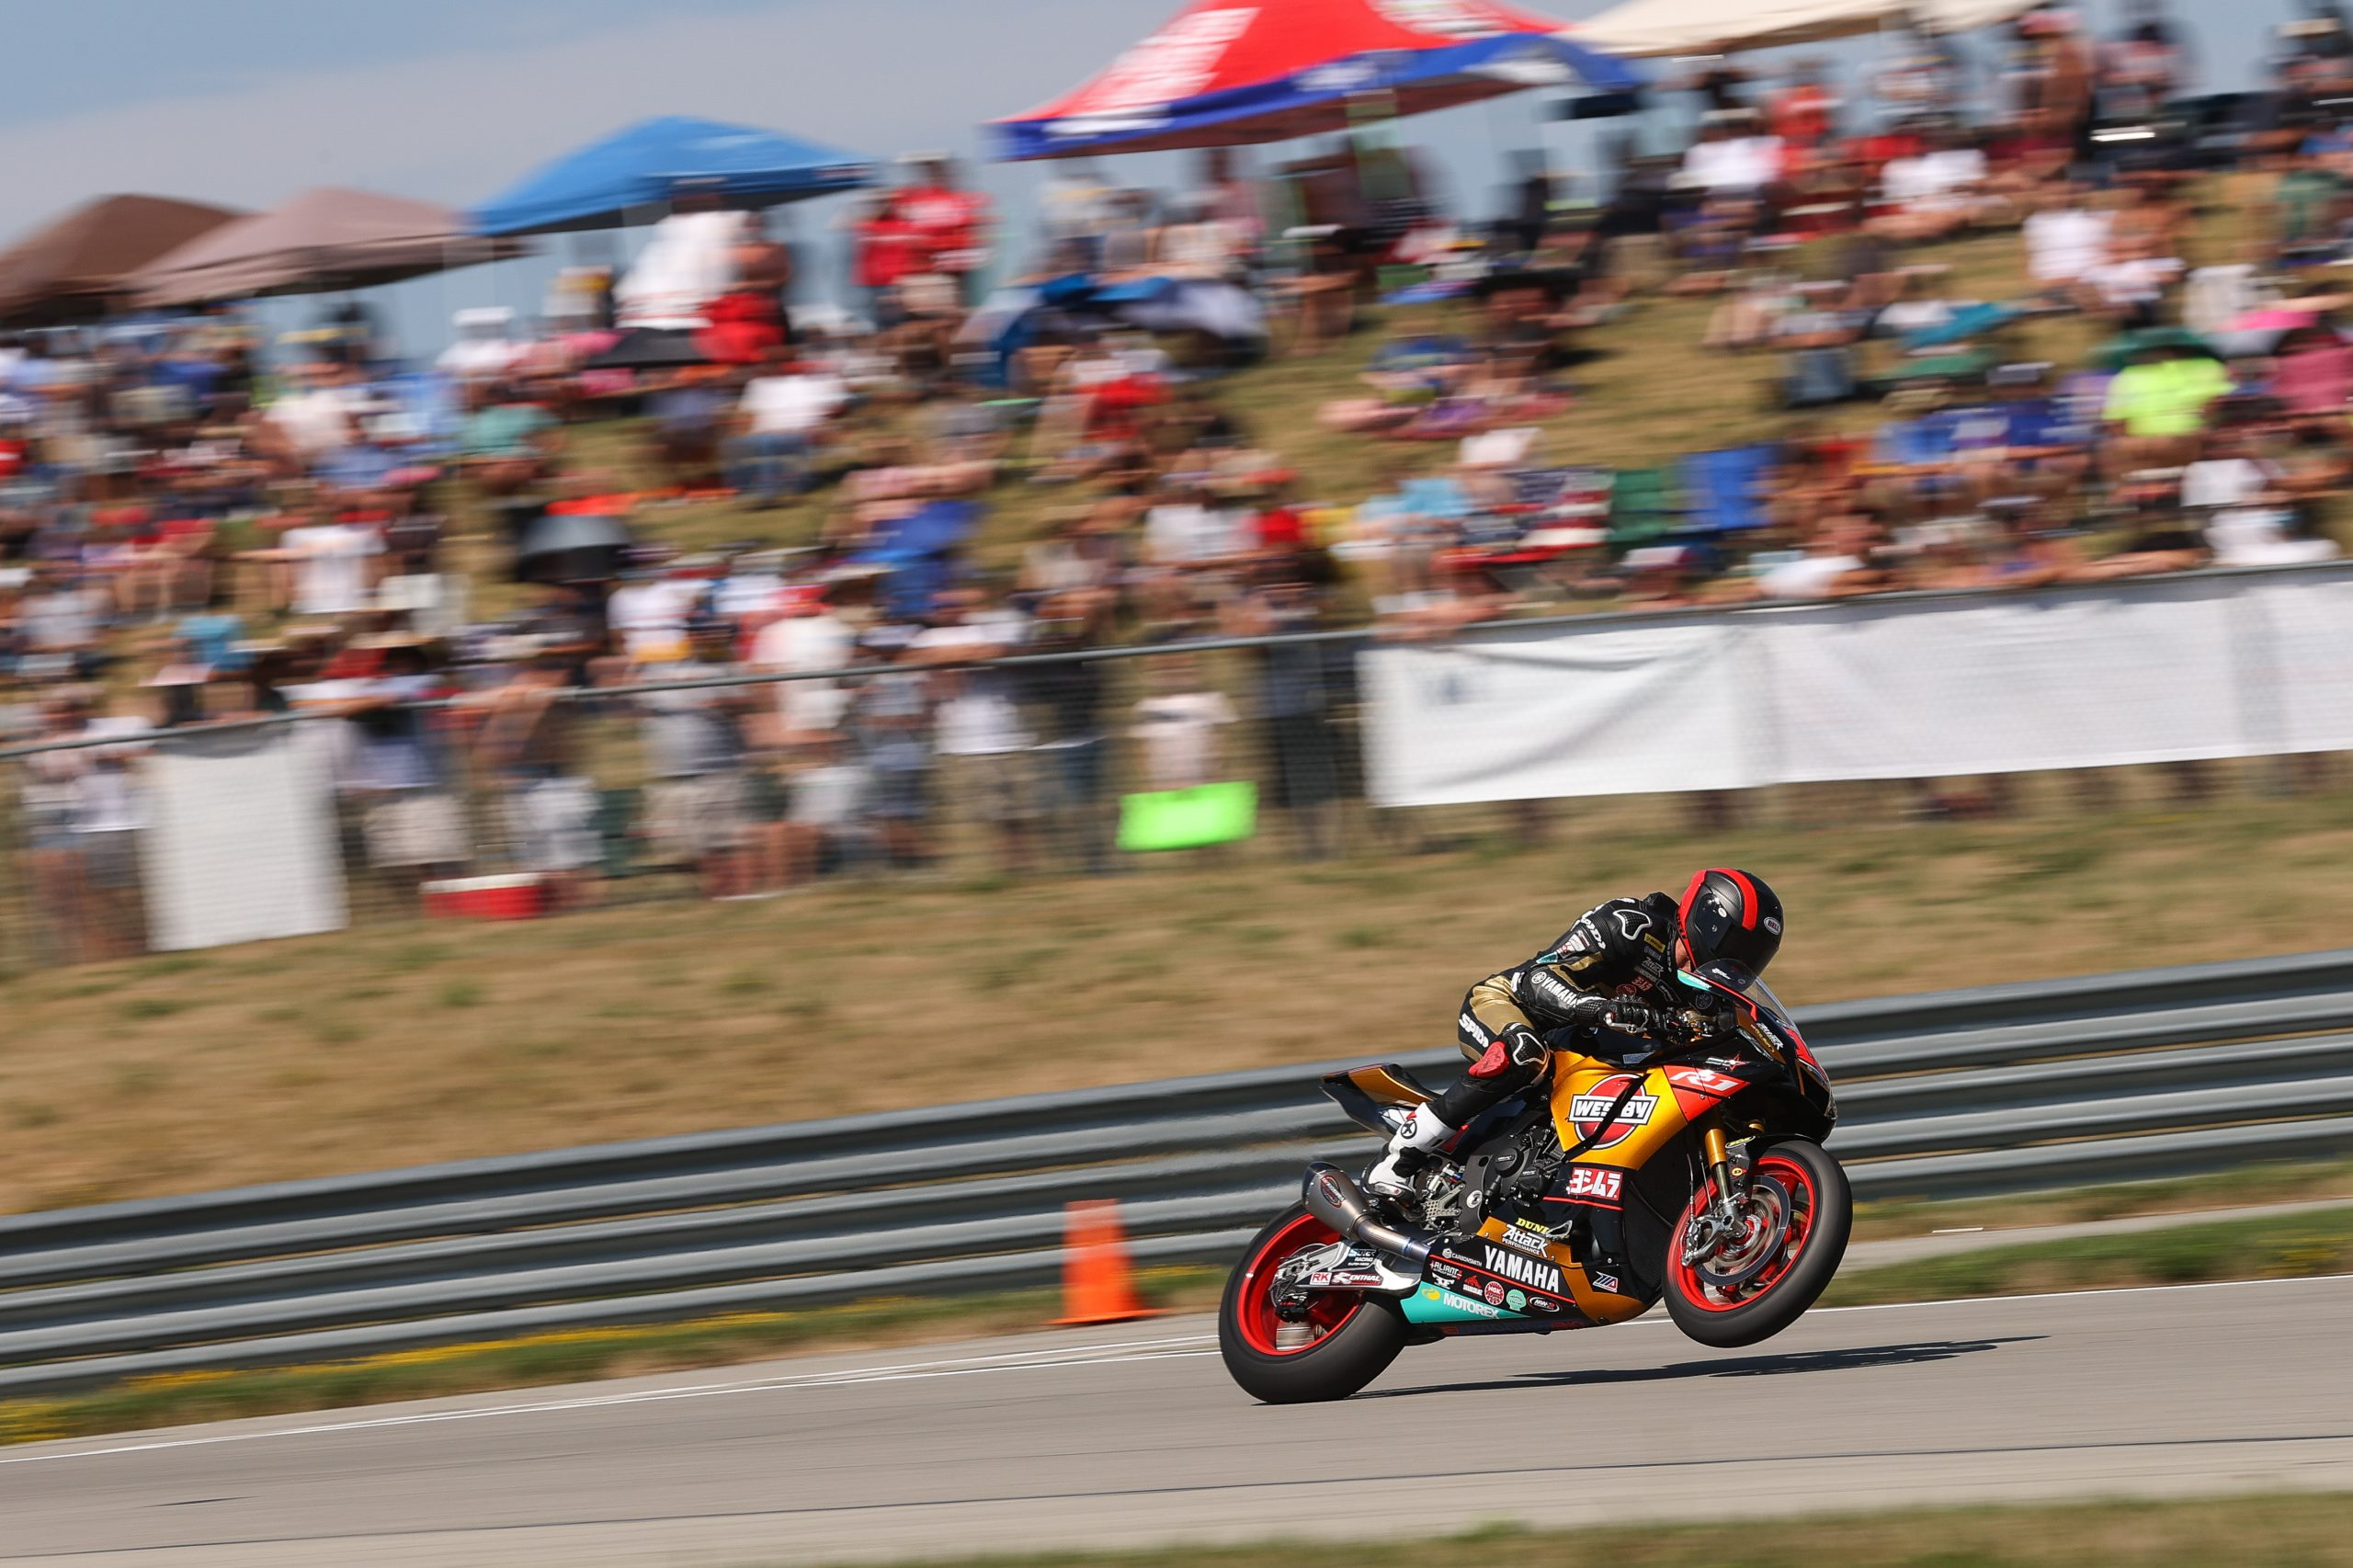 210811 The hills are alive. Pittsburgh International Race Complex is a crowd favorite and Mathew Scholtz